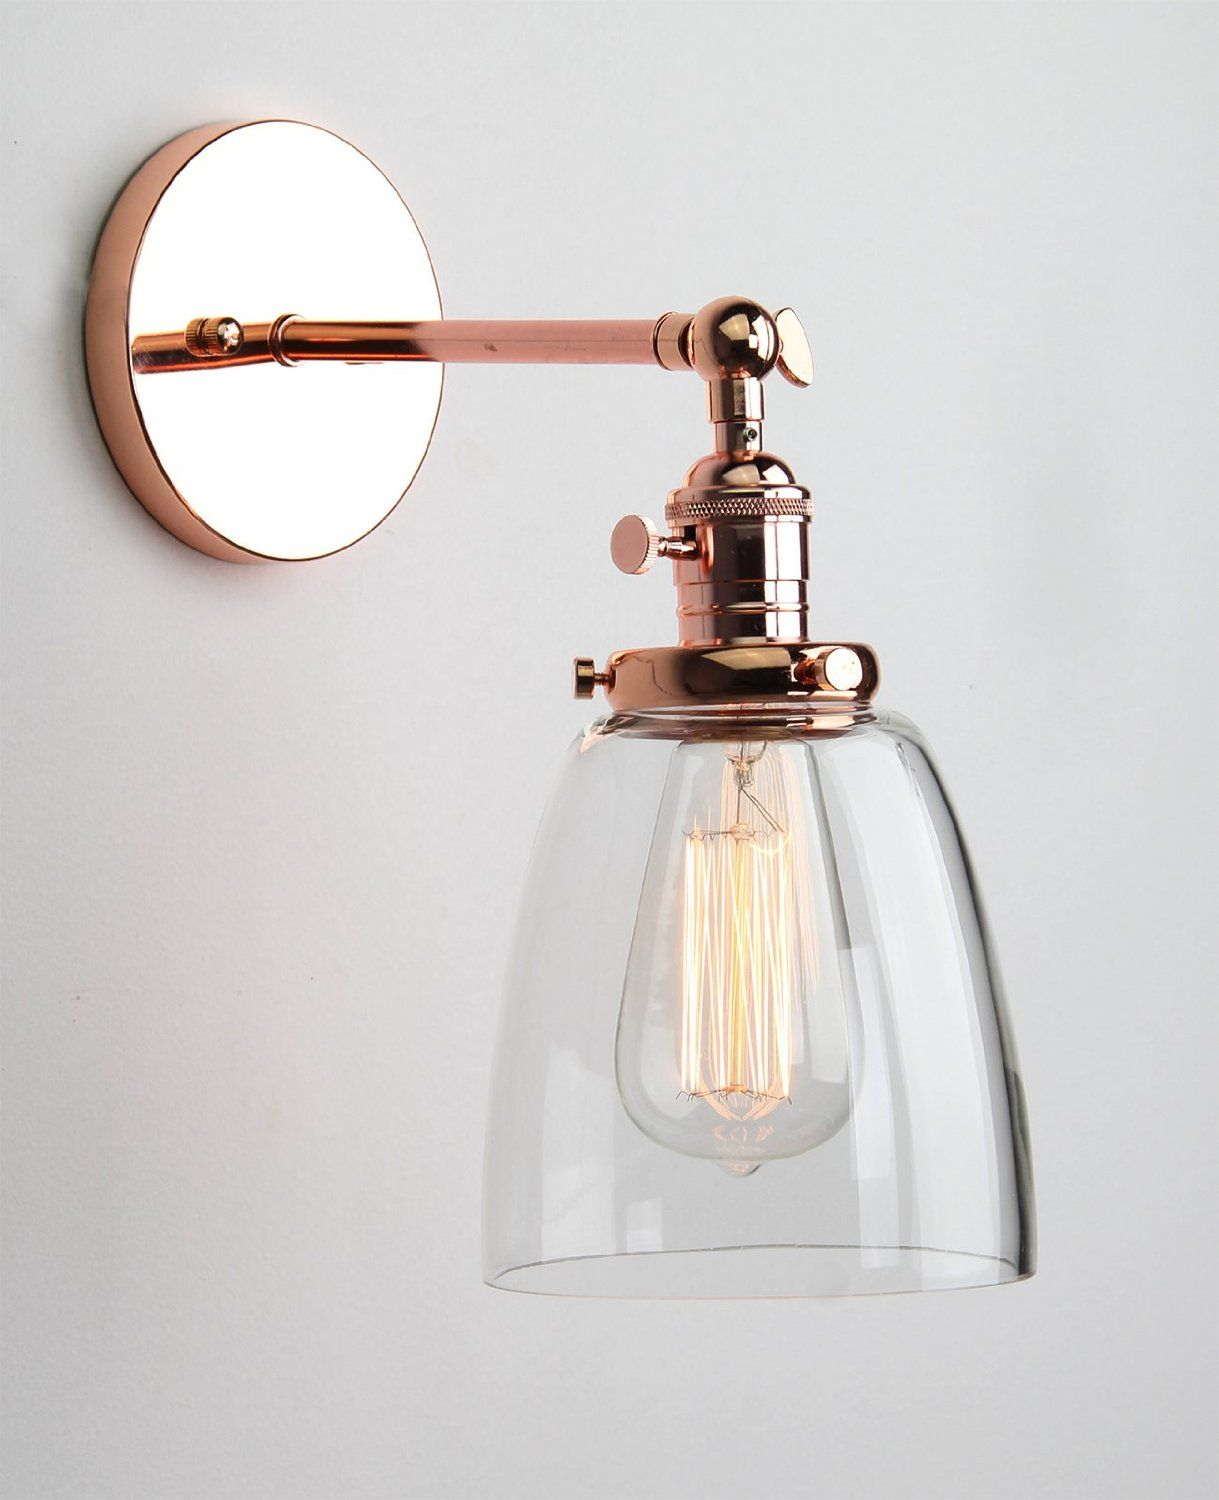 Permo Industrial Edison Antique Single Sconce With Oval Cone Clear Glass Shade 1-light Wall ...